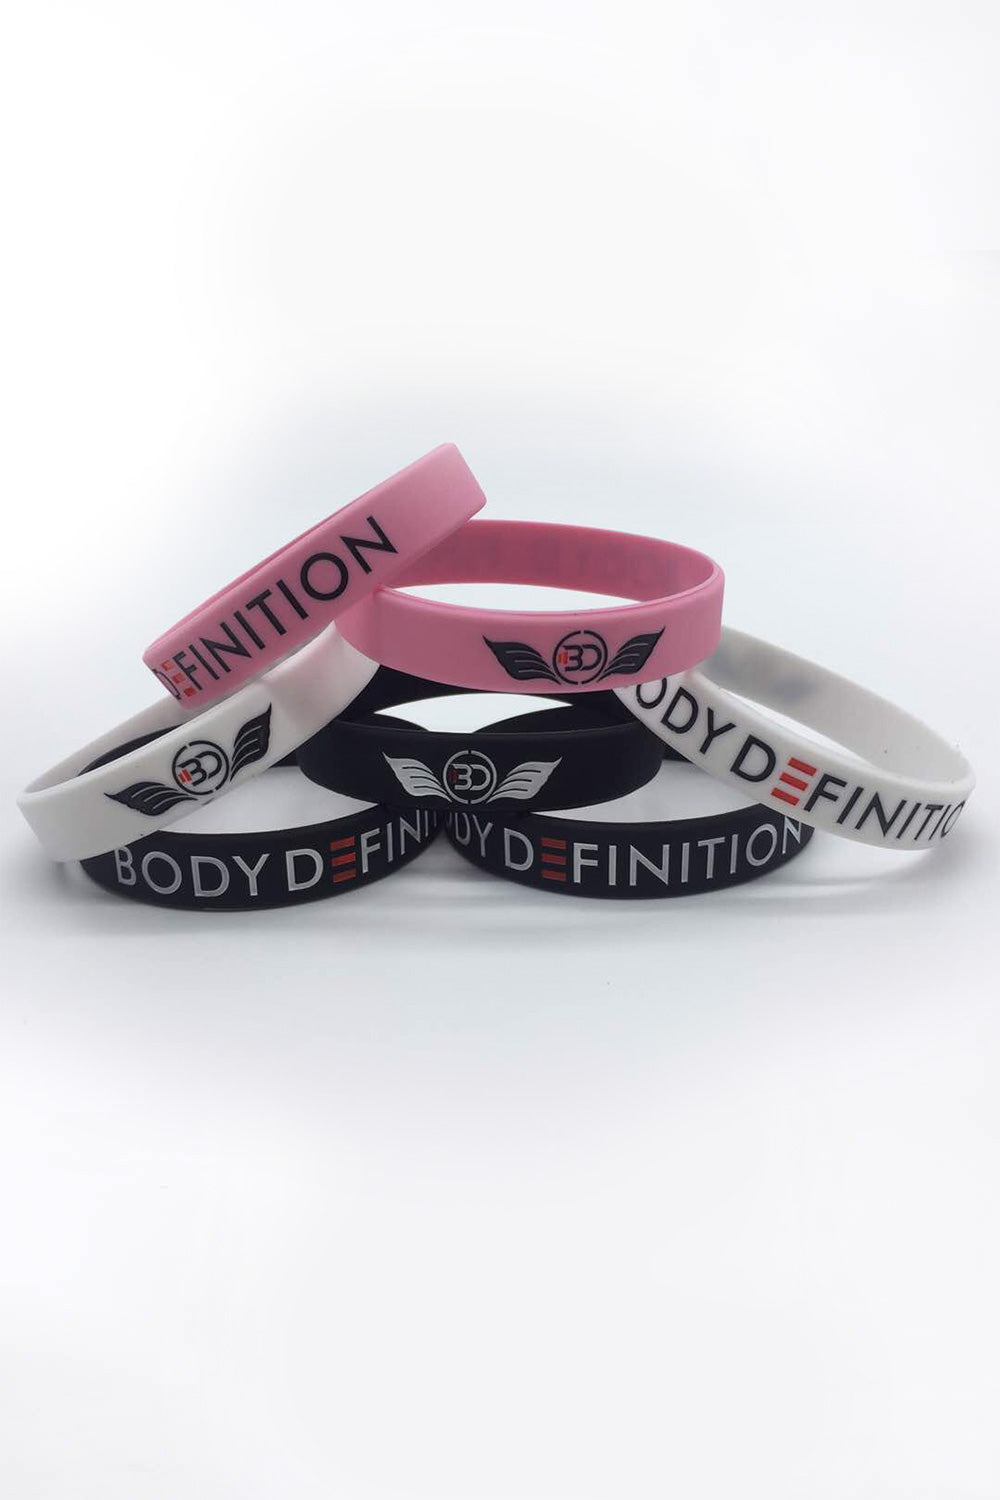 Wrist Bands Body Definition White Black Pink